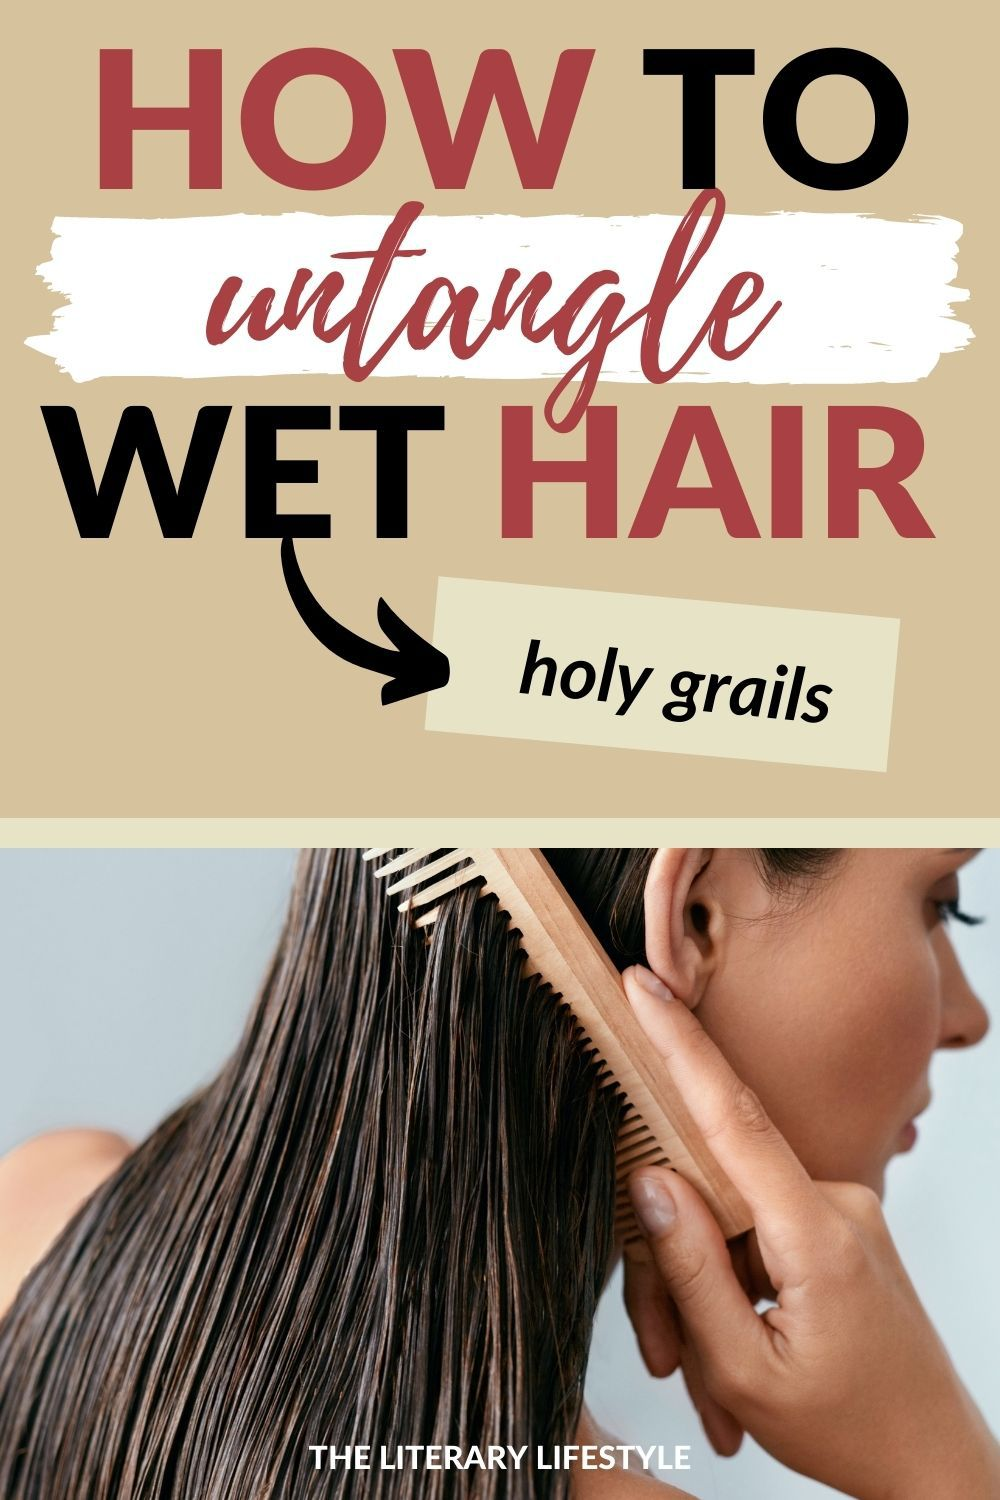 how to untangle wet hair